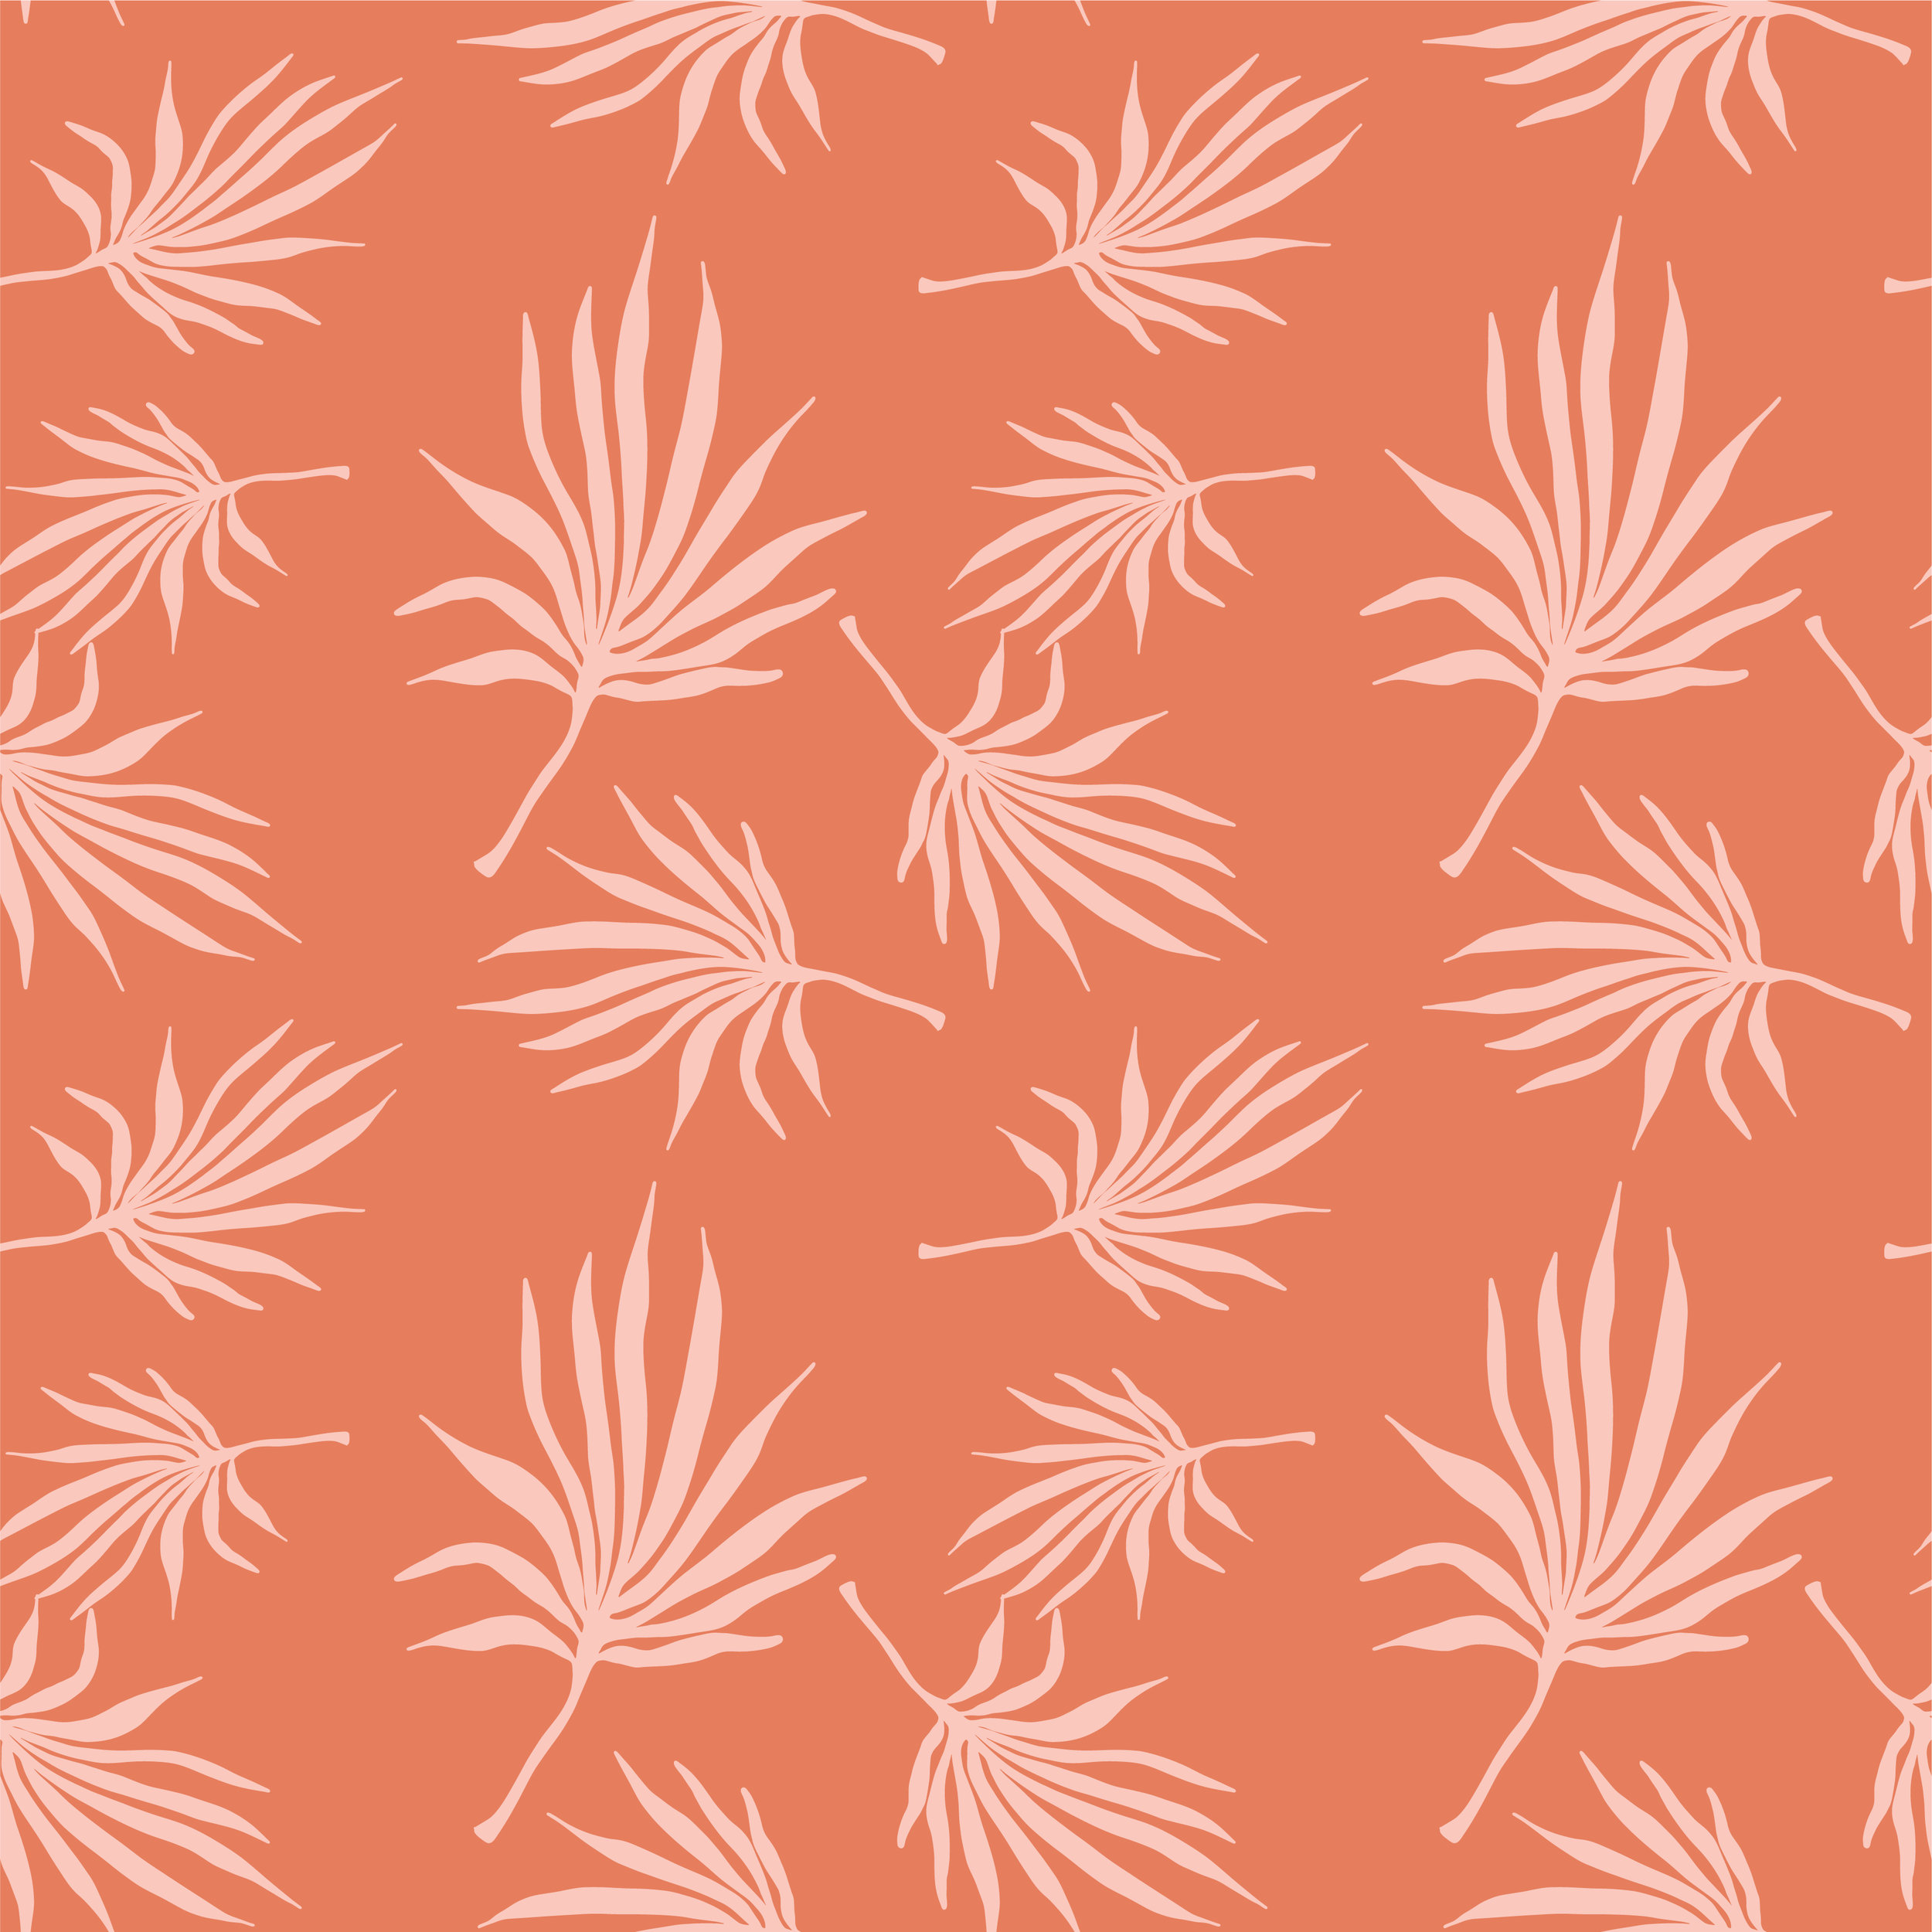 botanical patterns-09.jpg